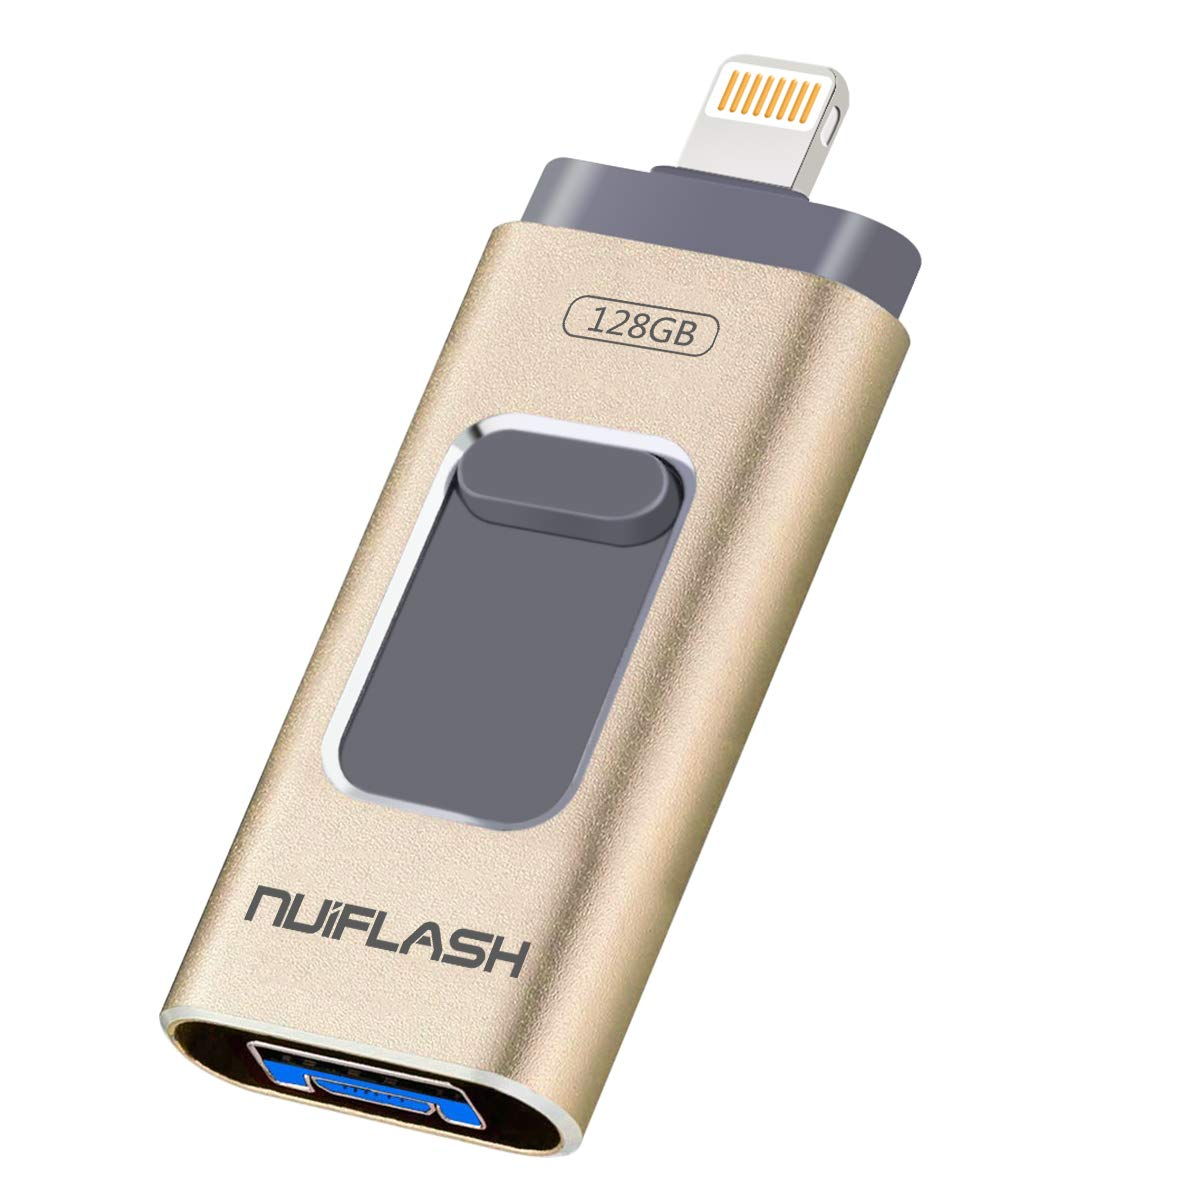 256GB, Gold Thumb Drive Compatible with iPhone//iPad//iOS//Android//Mac//PC USB Flash Drive 256GB for iPhone Memory Stick USB 3.0 Photo Stick for iOS Flash Drive External Storage 3in1